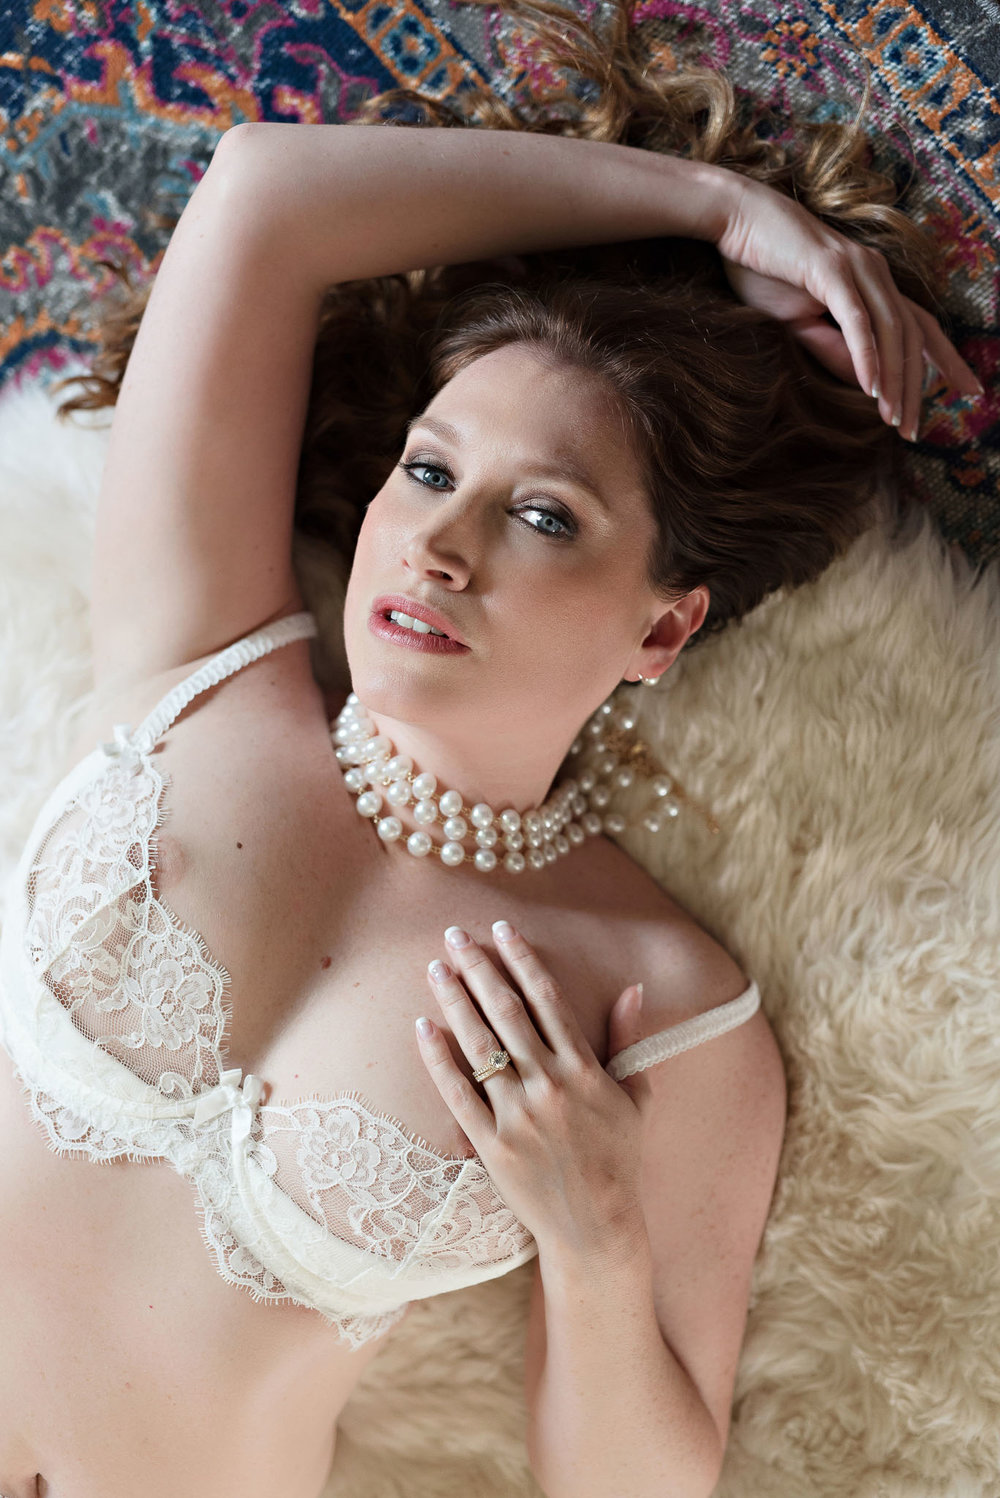 Bridal boudoir photo of brunette woman wearing lace lingerie in Denver Colorado boudoir photographer studio